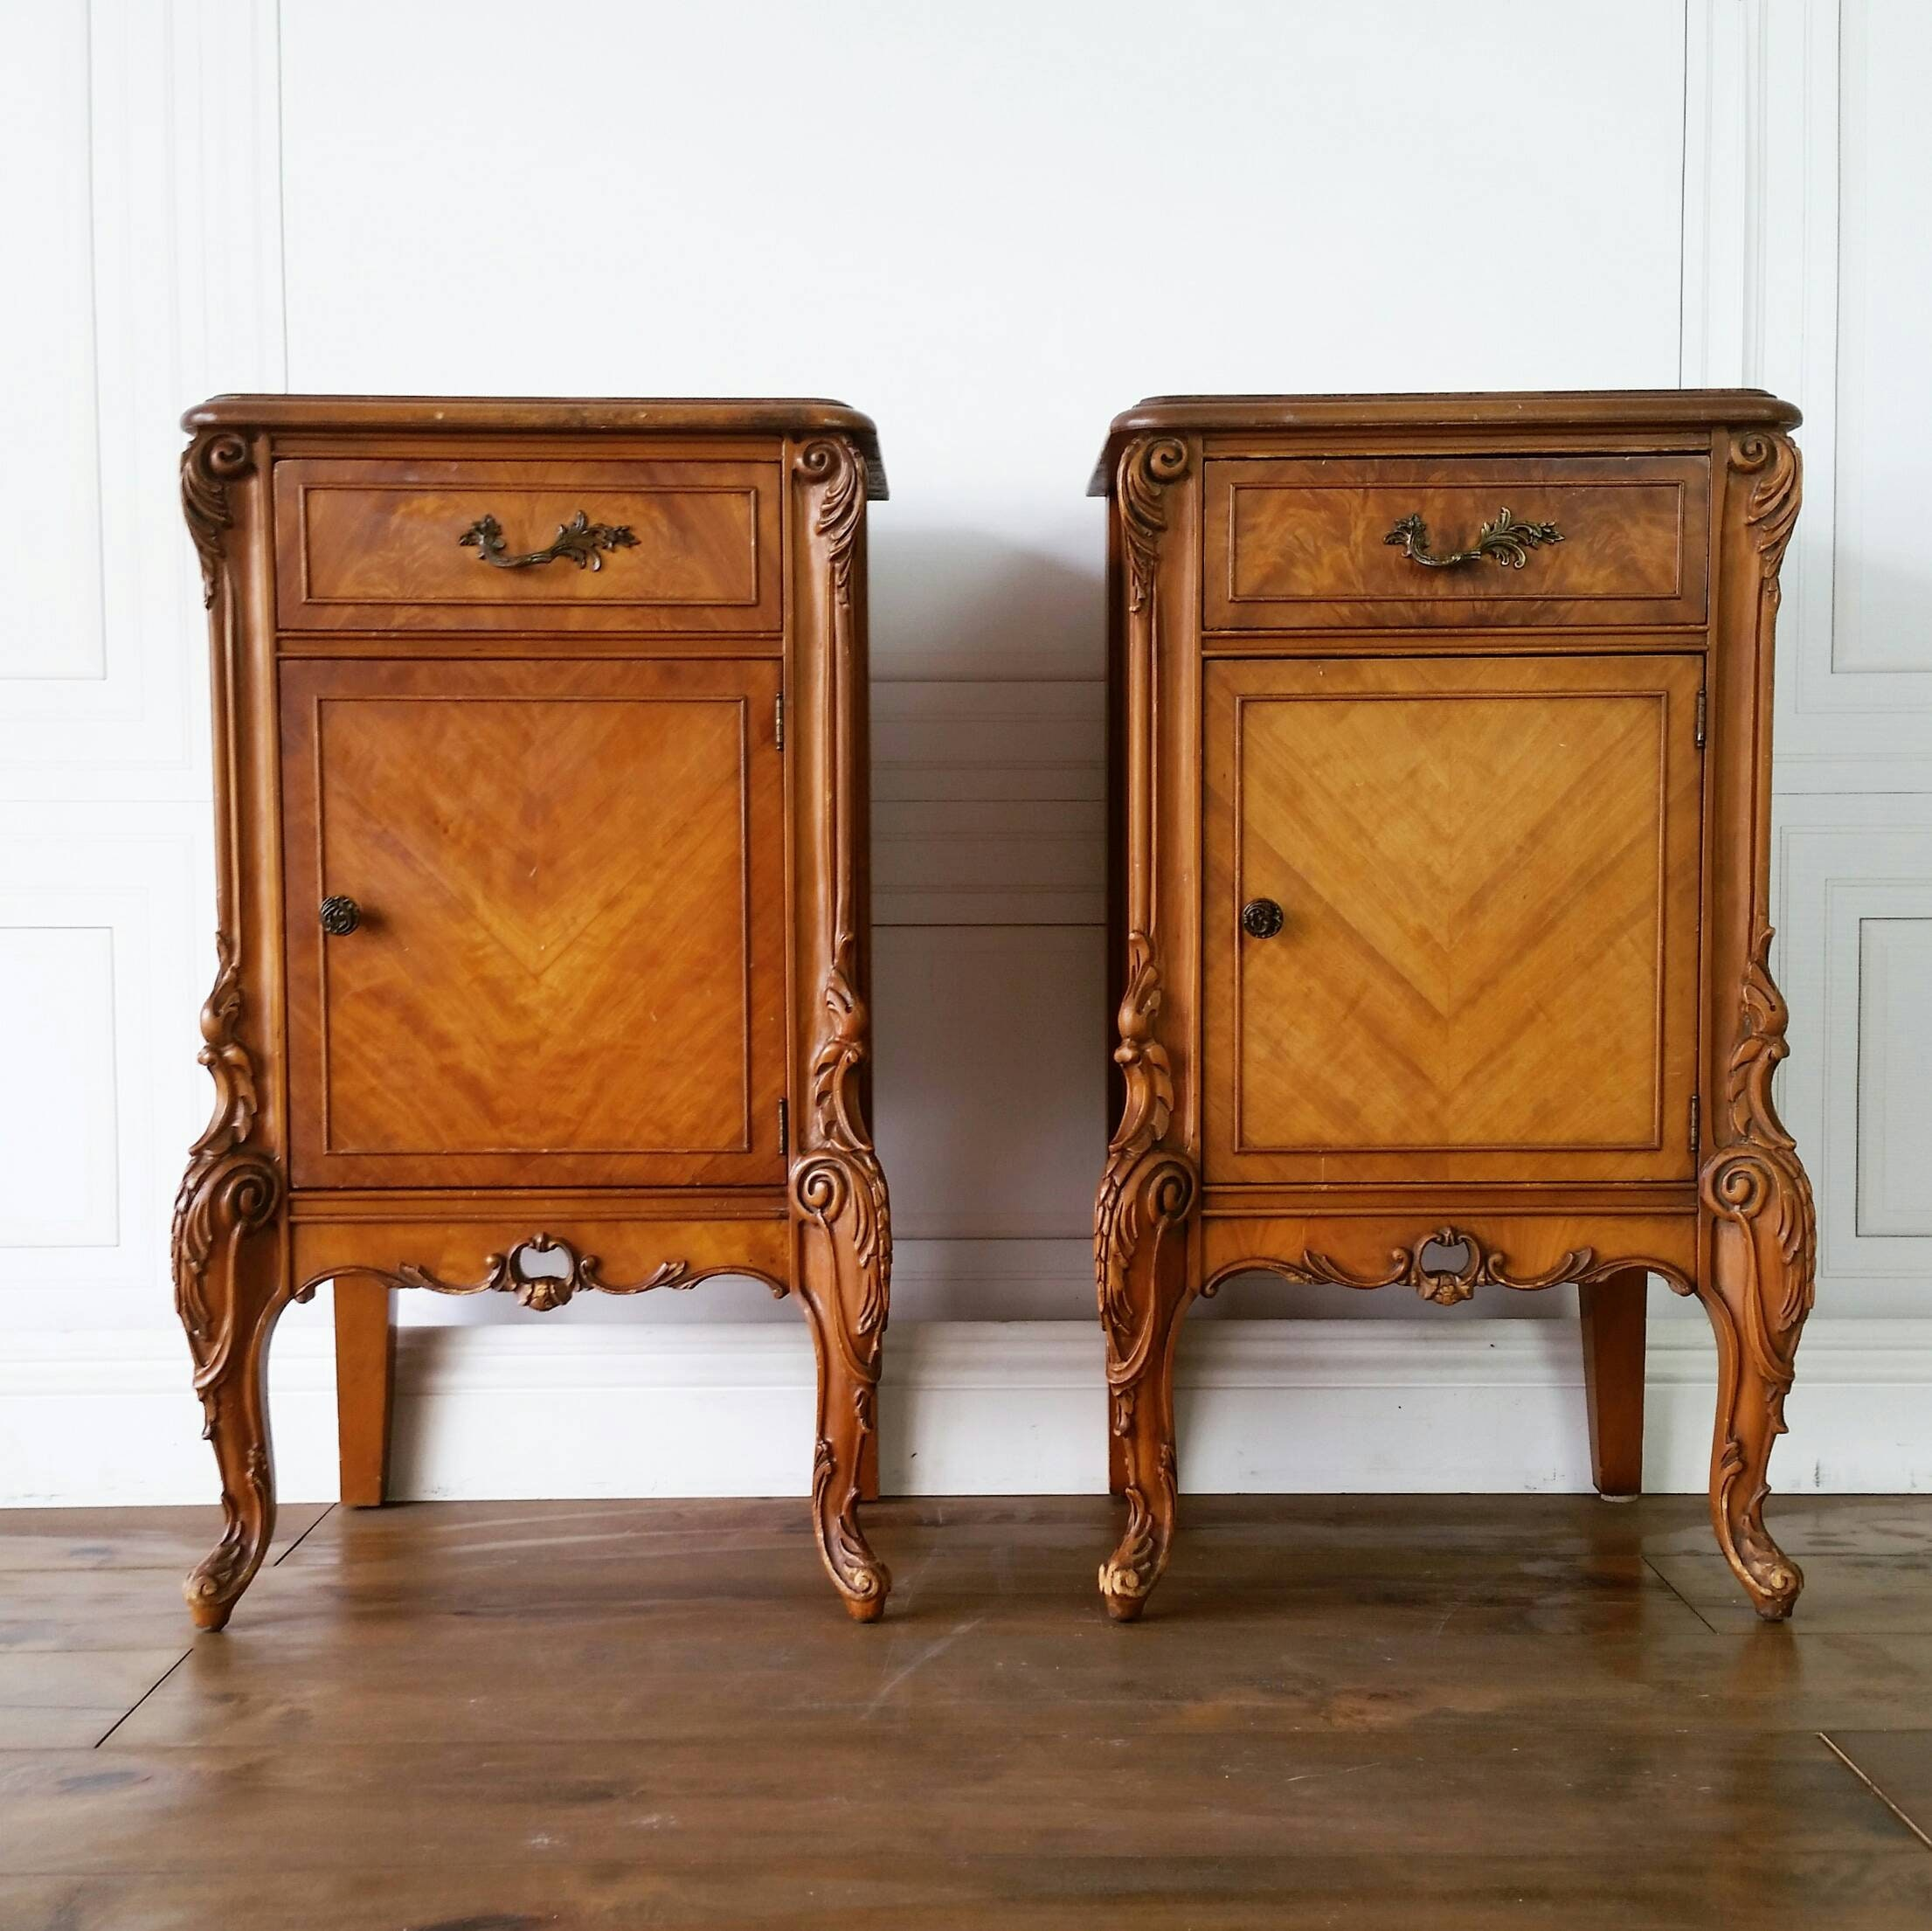 Pending Kristen Free Shipping Very Rare Antique French Nightstands Pair Glam Hollywood Louis Provincial Bedside Boudoir Accent Cabinet